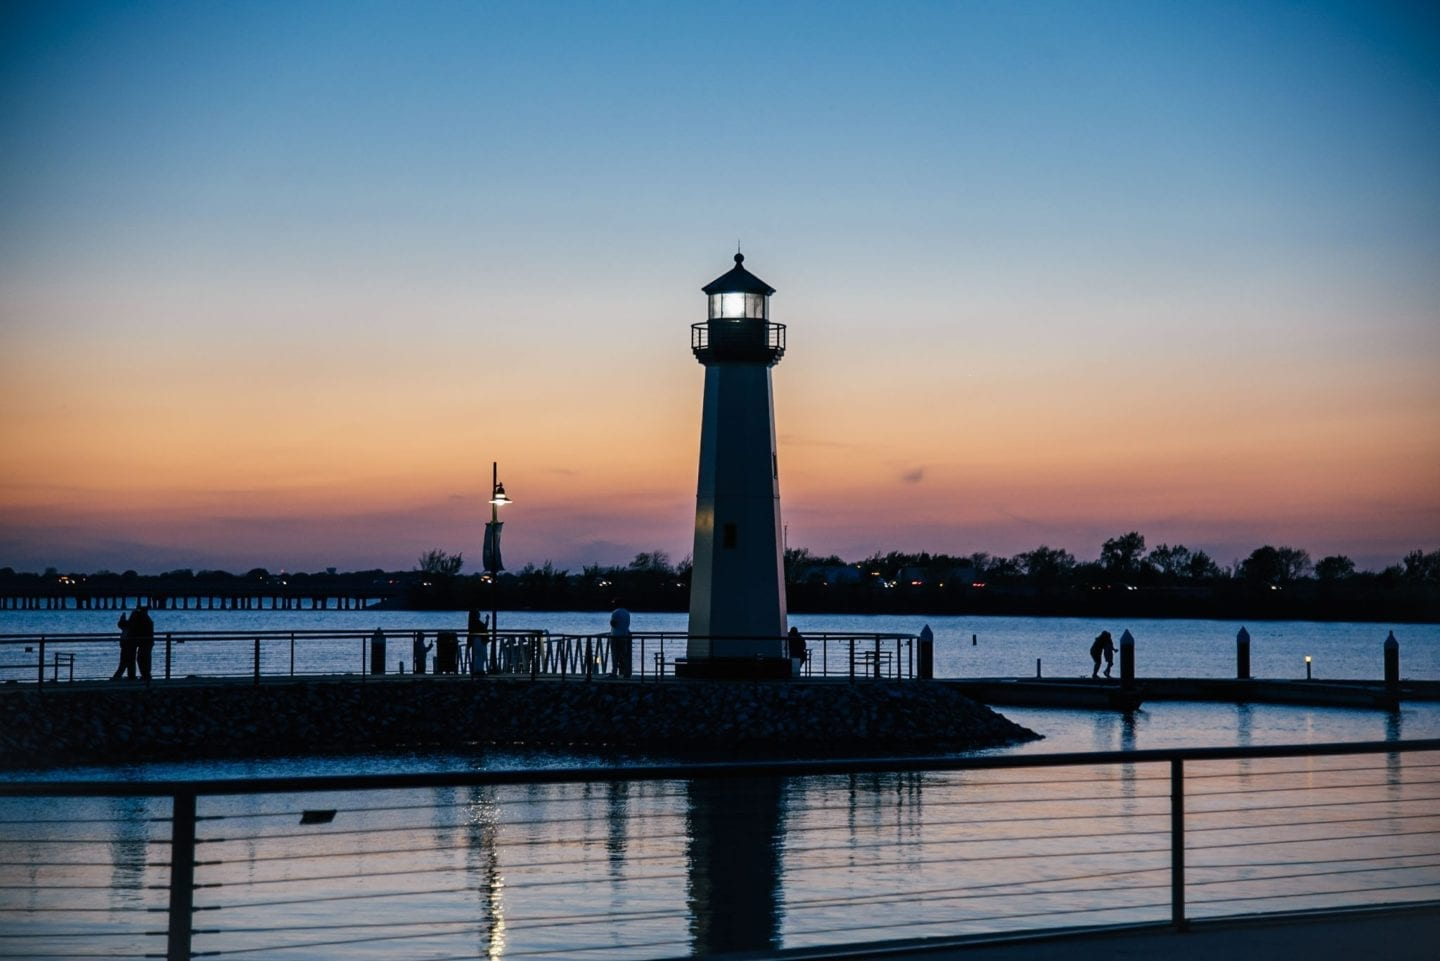 sunset on lake ray hubbard with lighthouse